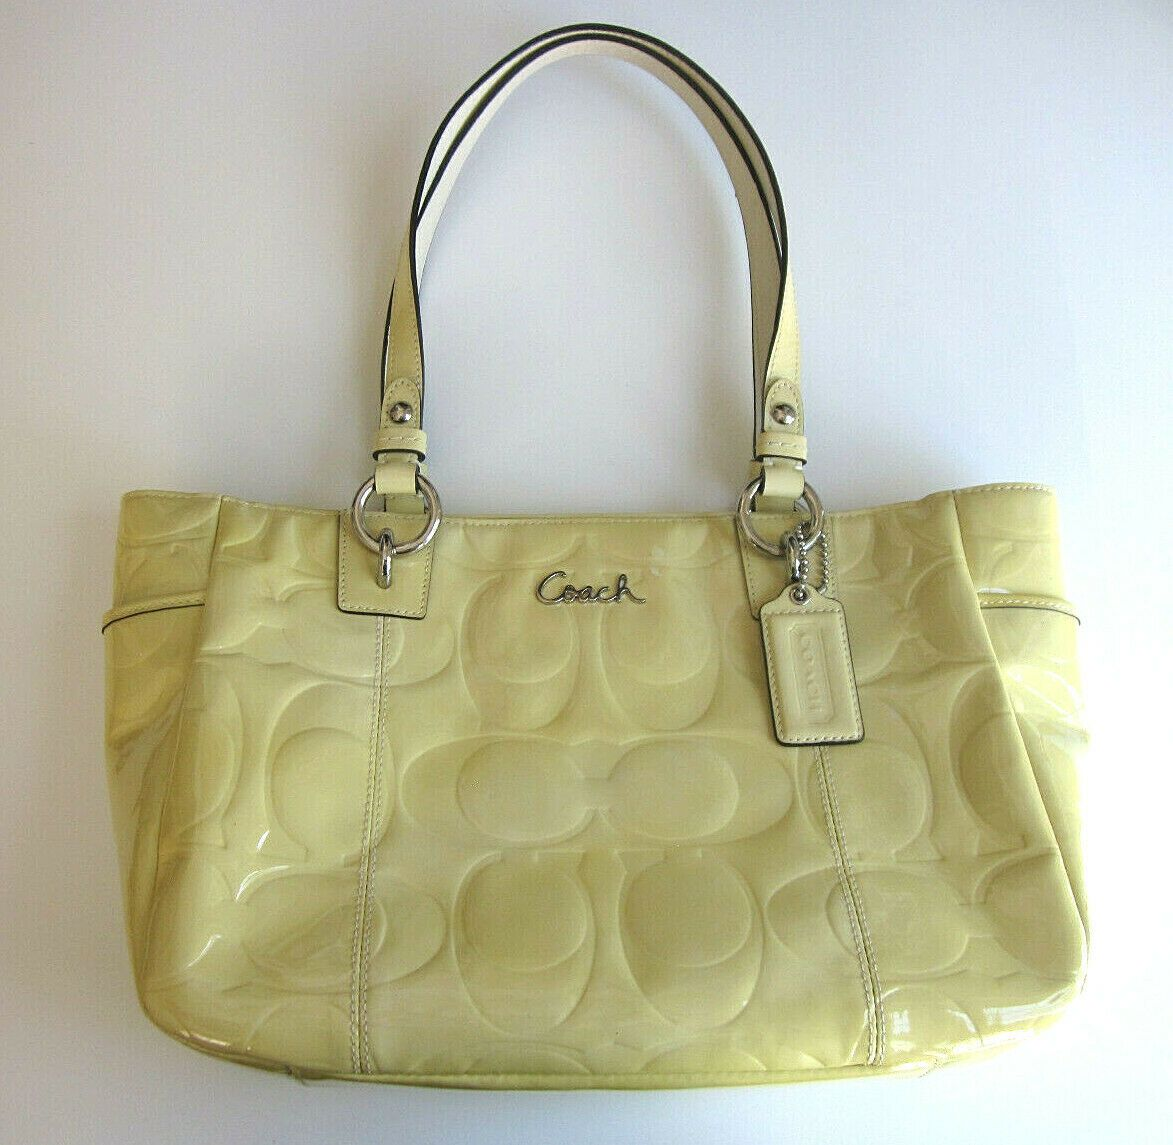 COACH Womens Yellow Vintage Patent Leather Light Blue